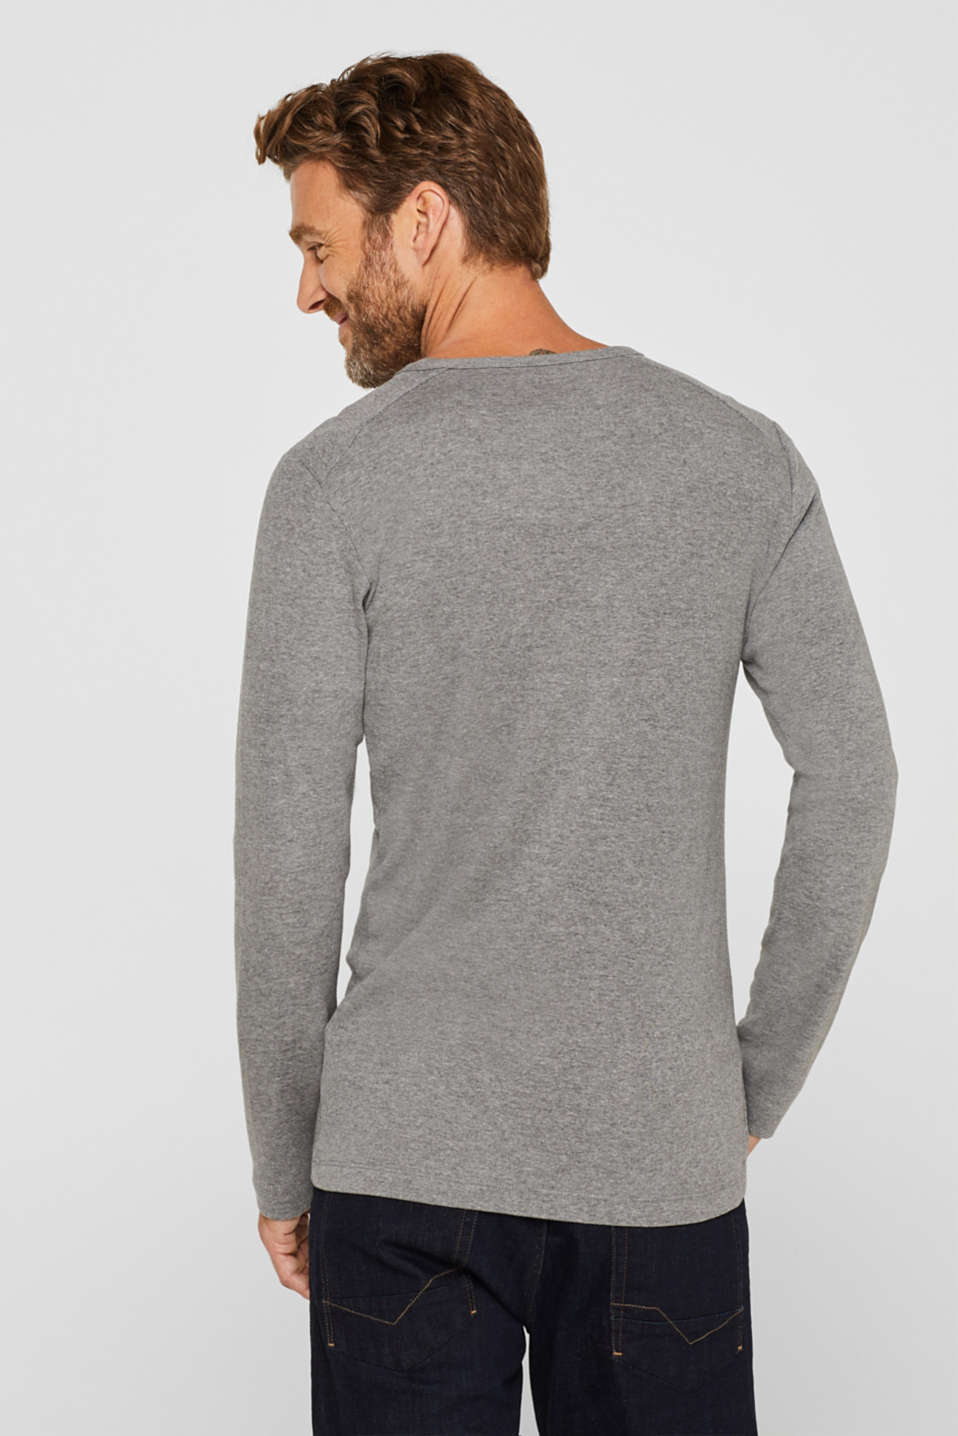 Melange long sleeve jersey top, MEDIUM GREY, detail image number 3